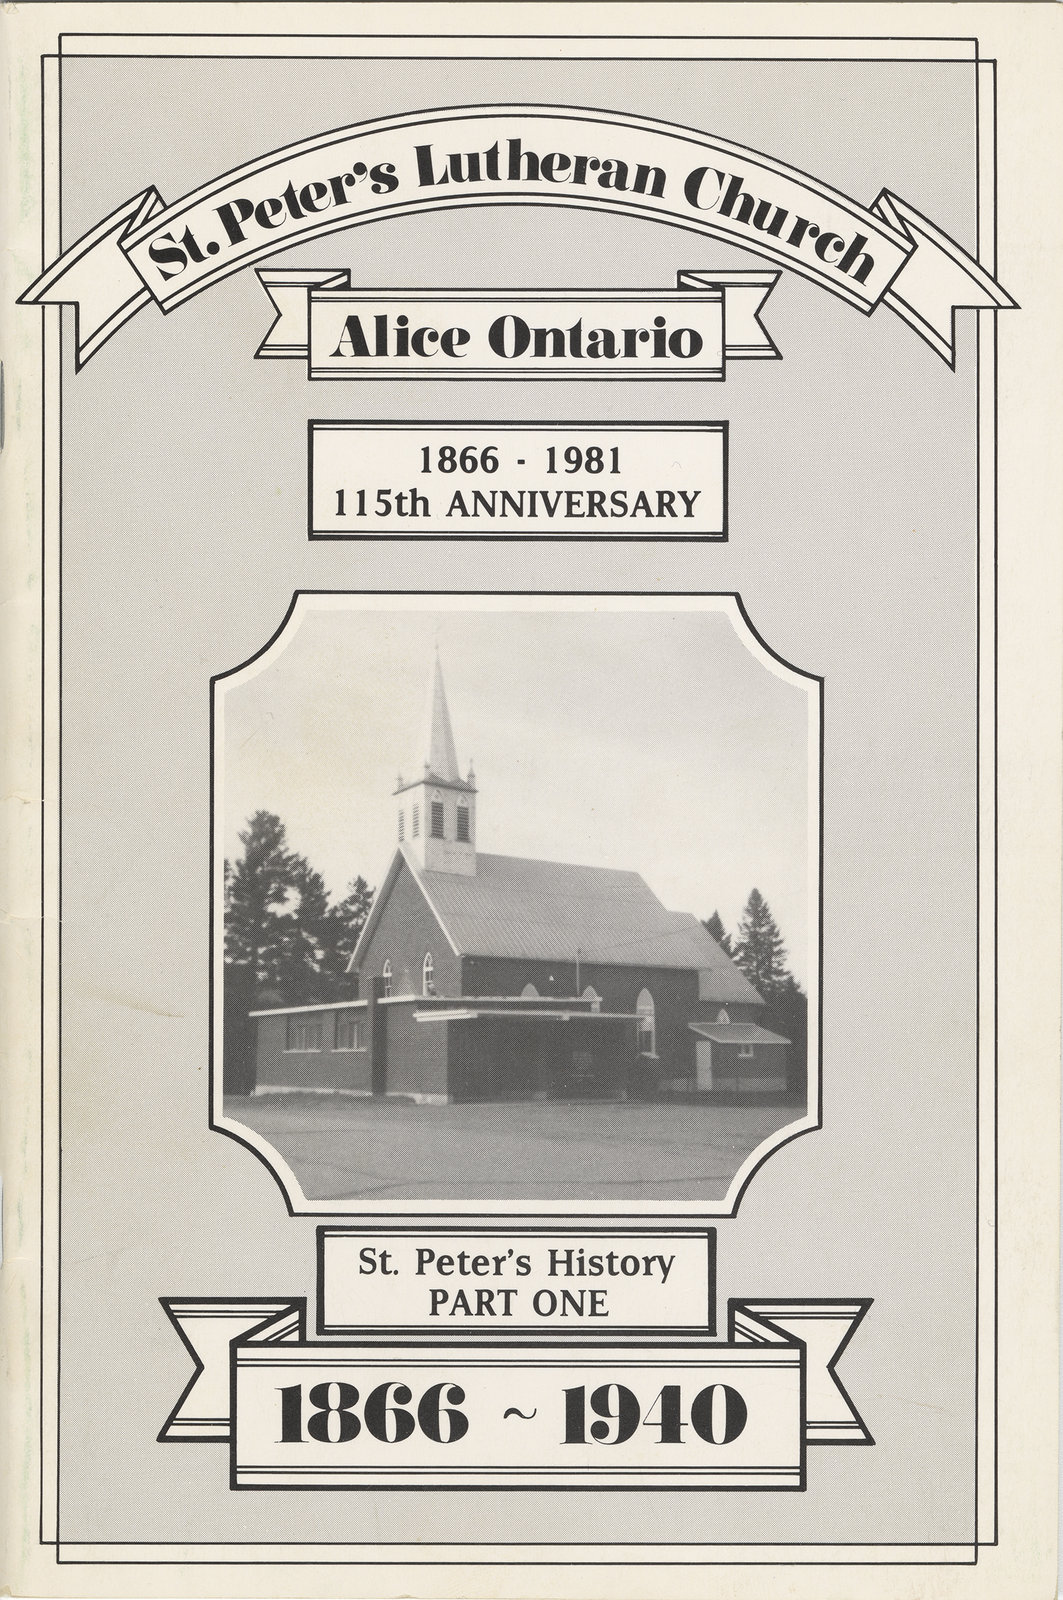 St. Peter's history : part one, 1866-1940 : St. Peter's Lutheran Church, Alice, Ontario